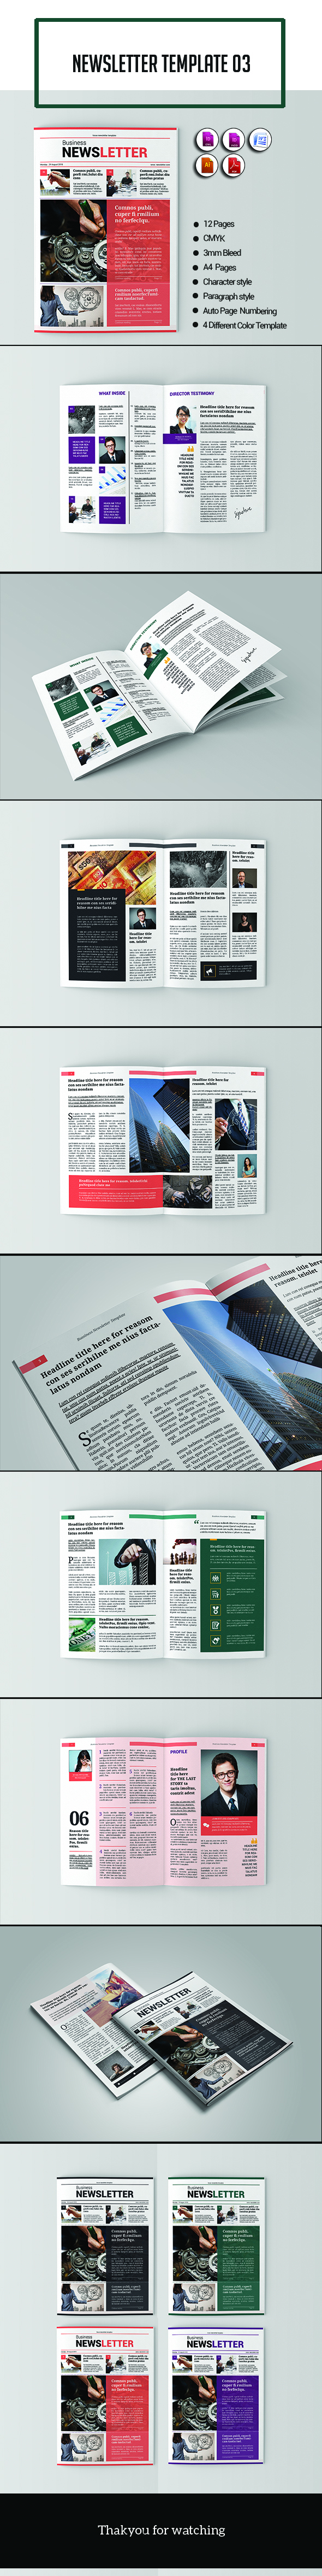 The Modern Newsletter Template With Different Colors Are Suitable For Institutions Or Companies Easily Customizable To Your Needs